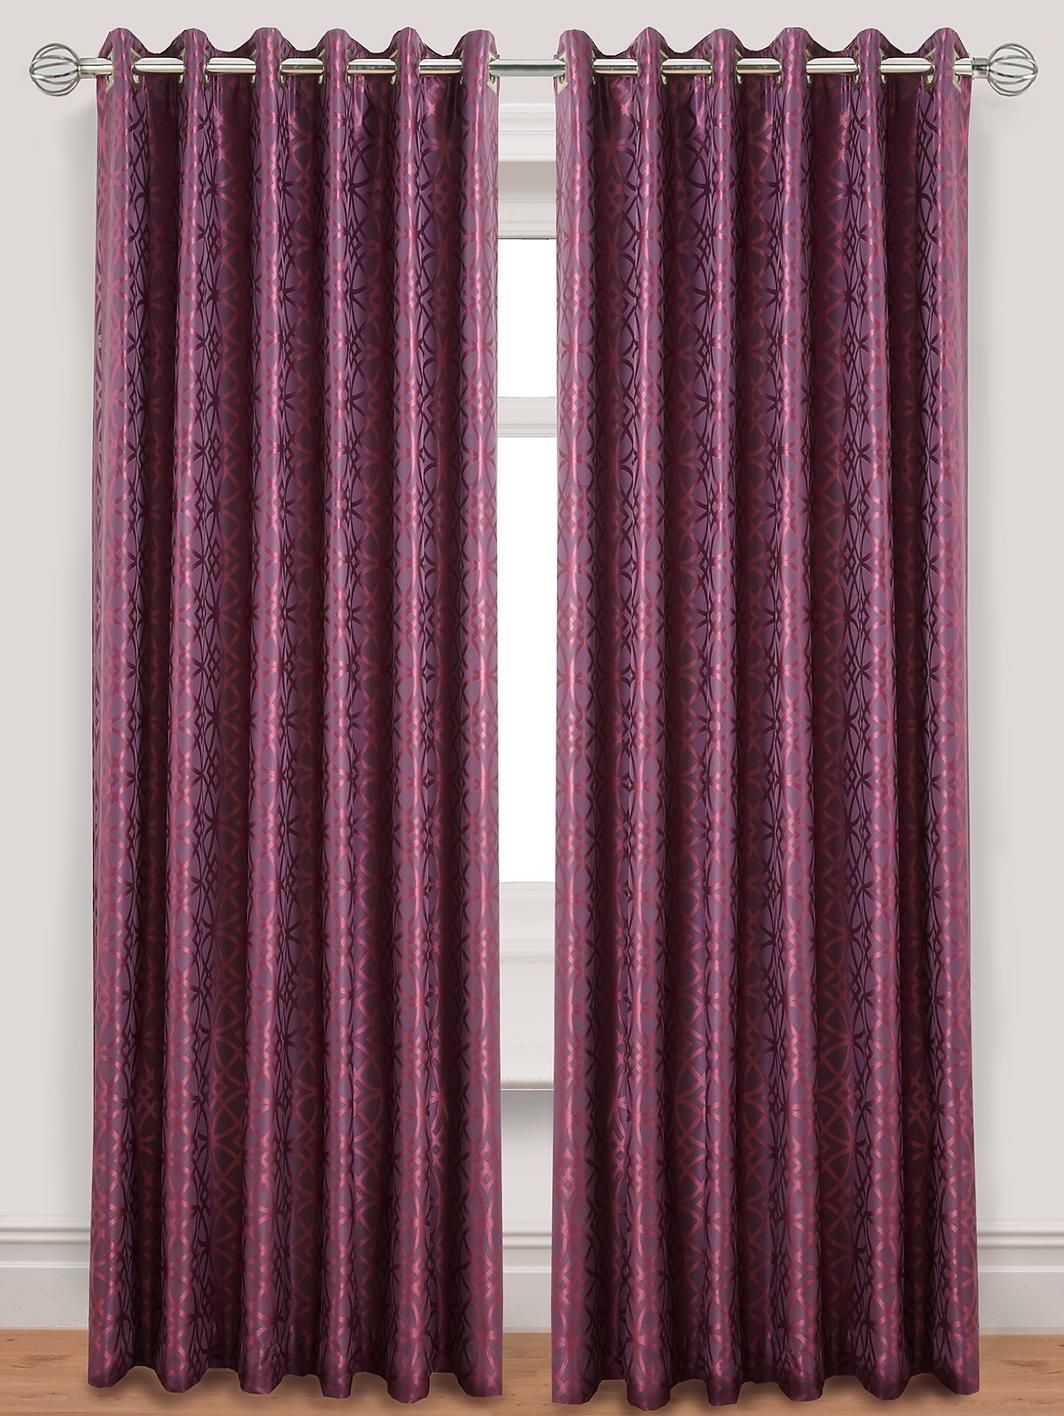 Gloriental Jacquard Eyelet Curtains, http://www.littlewoods.com ...